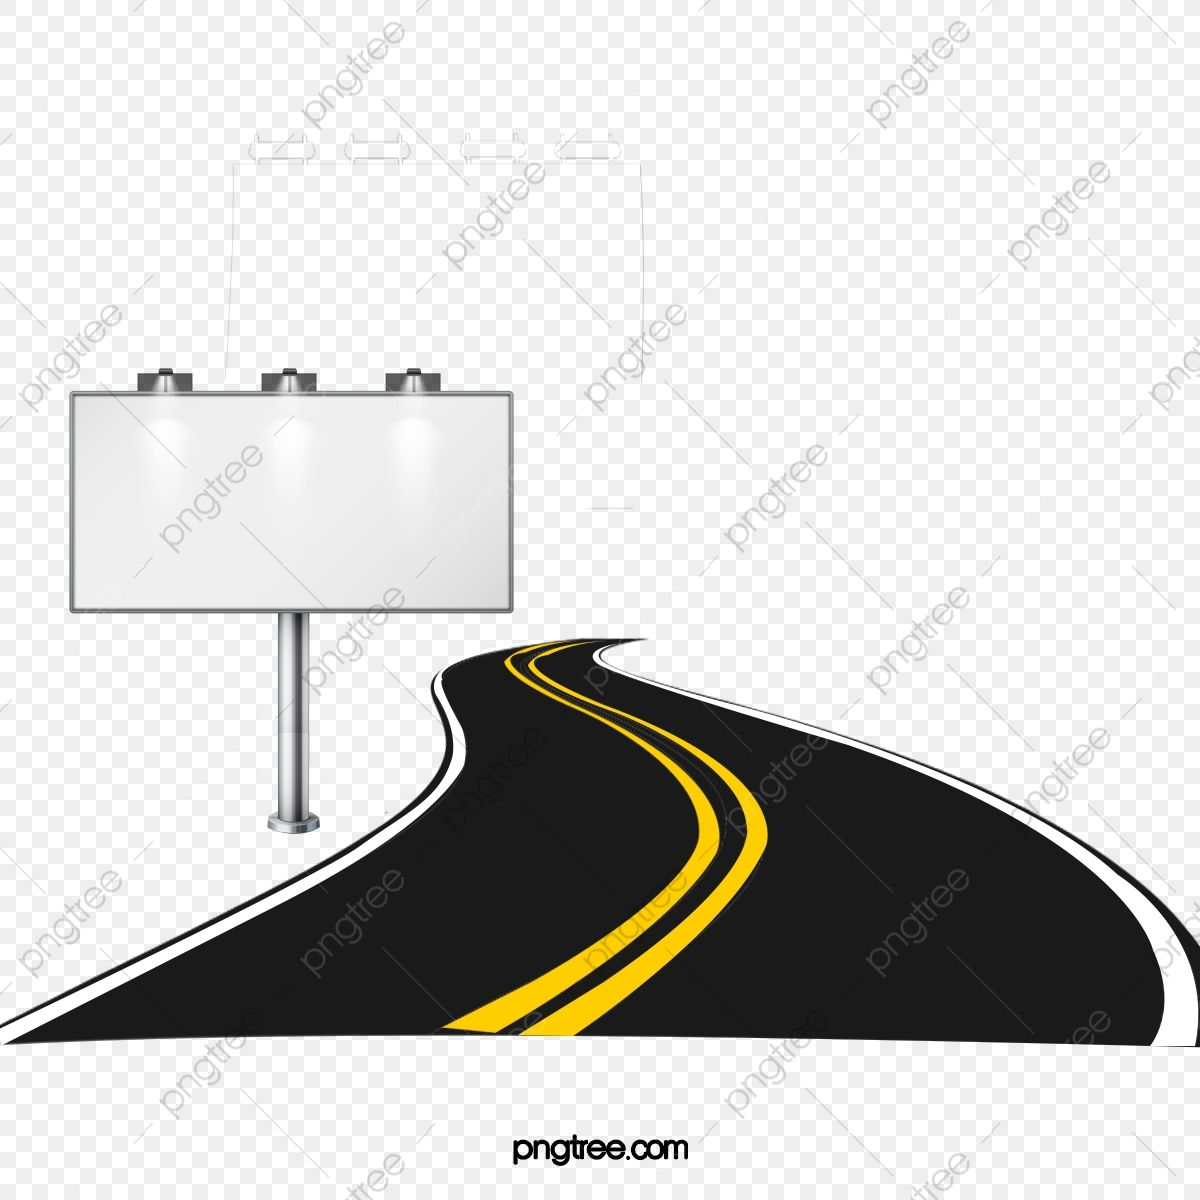 Cartoon Road No Way To Pull The Material Map Cartoon Clipart Road Clipart Map Clipart Png Transparent Clipart Image Cartoon Clip Art Clip Art Clipart Images